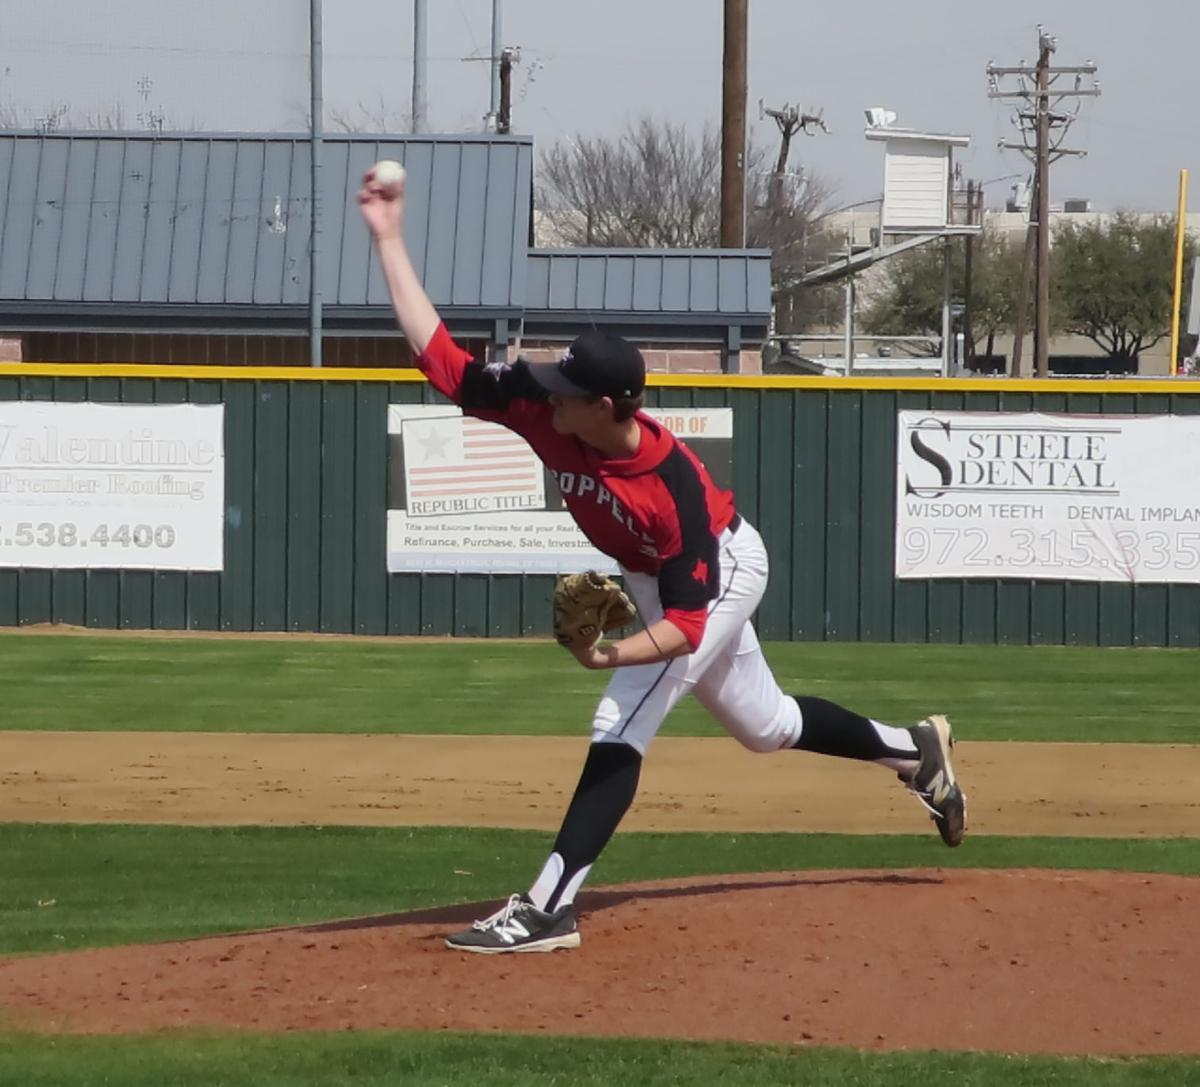 PODCAST: Baseball Title Races, Playoff Races, Seeding Races and Special Guest Rye Gunter (Coppell)